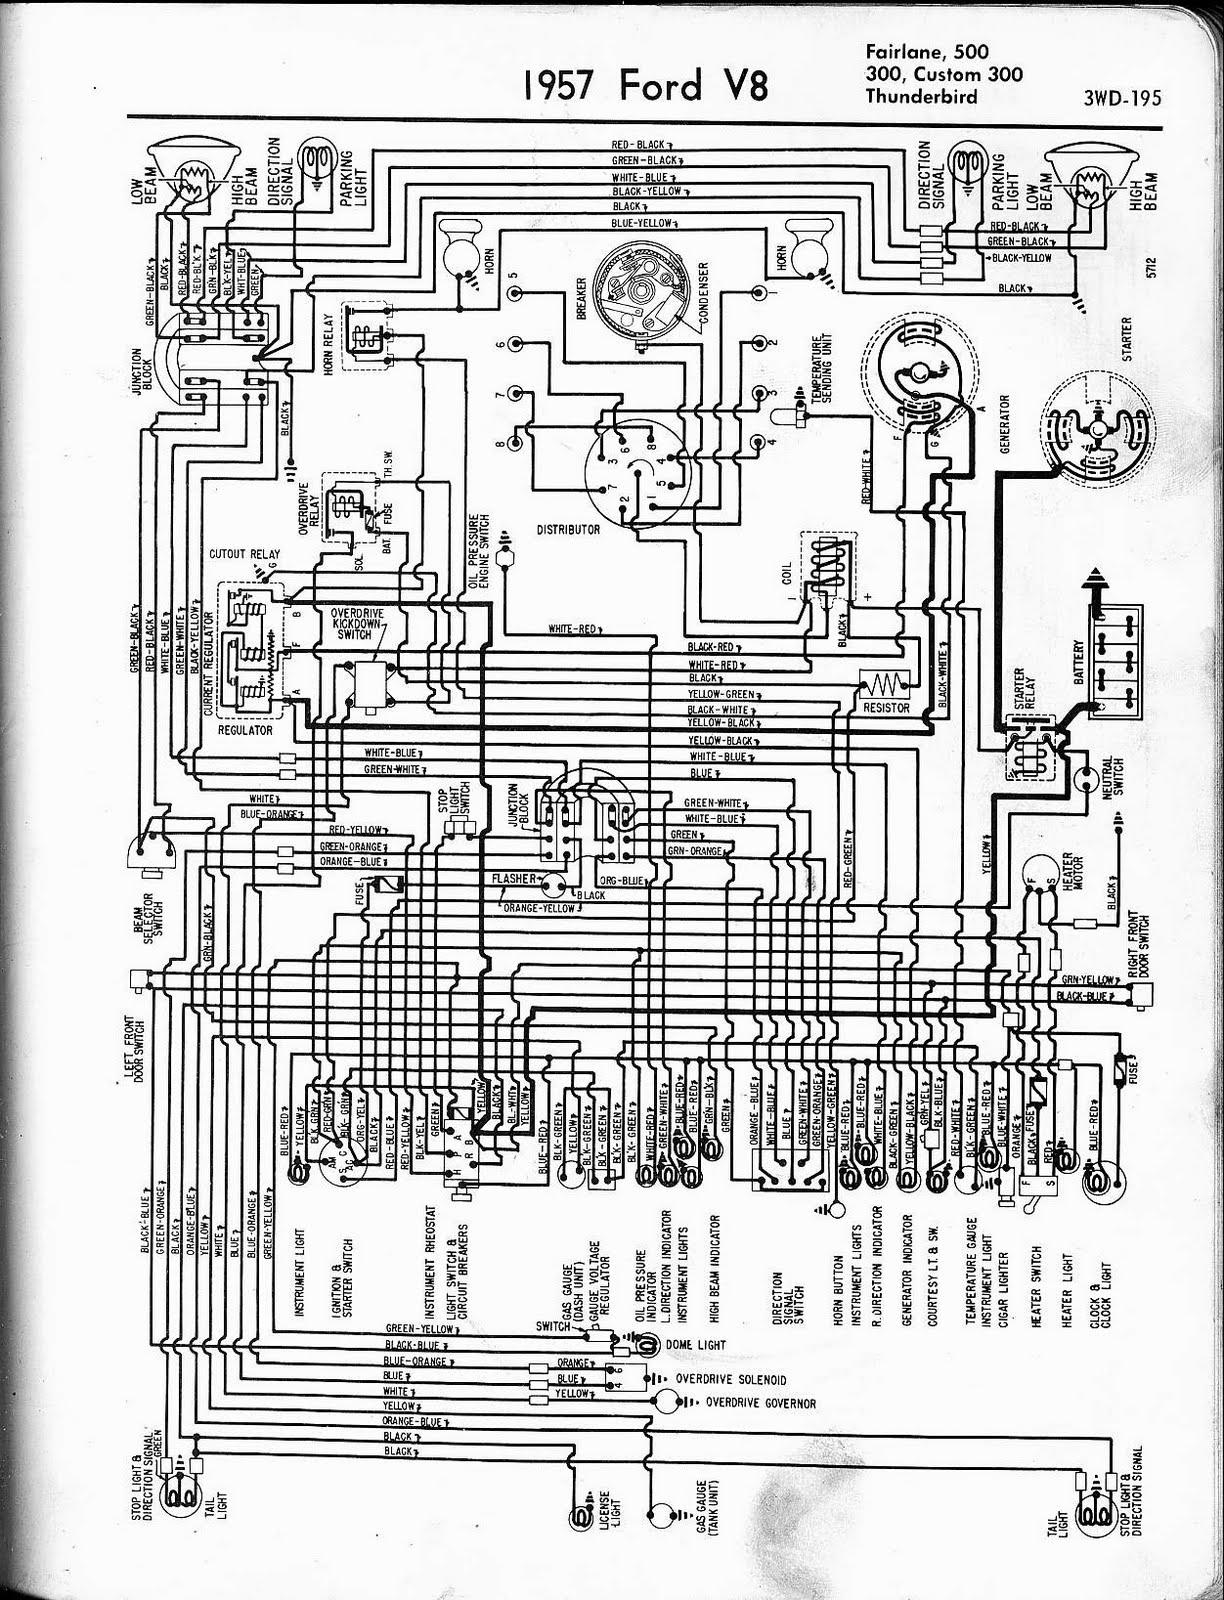 medium resolution of free auto wiring diagram 1957 ford v8 fairlane custom300 crown vic fuse diagram 2006 ford crown